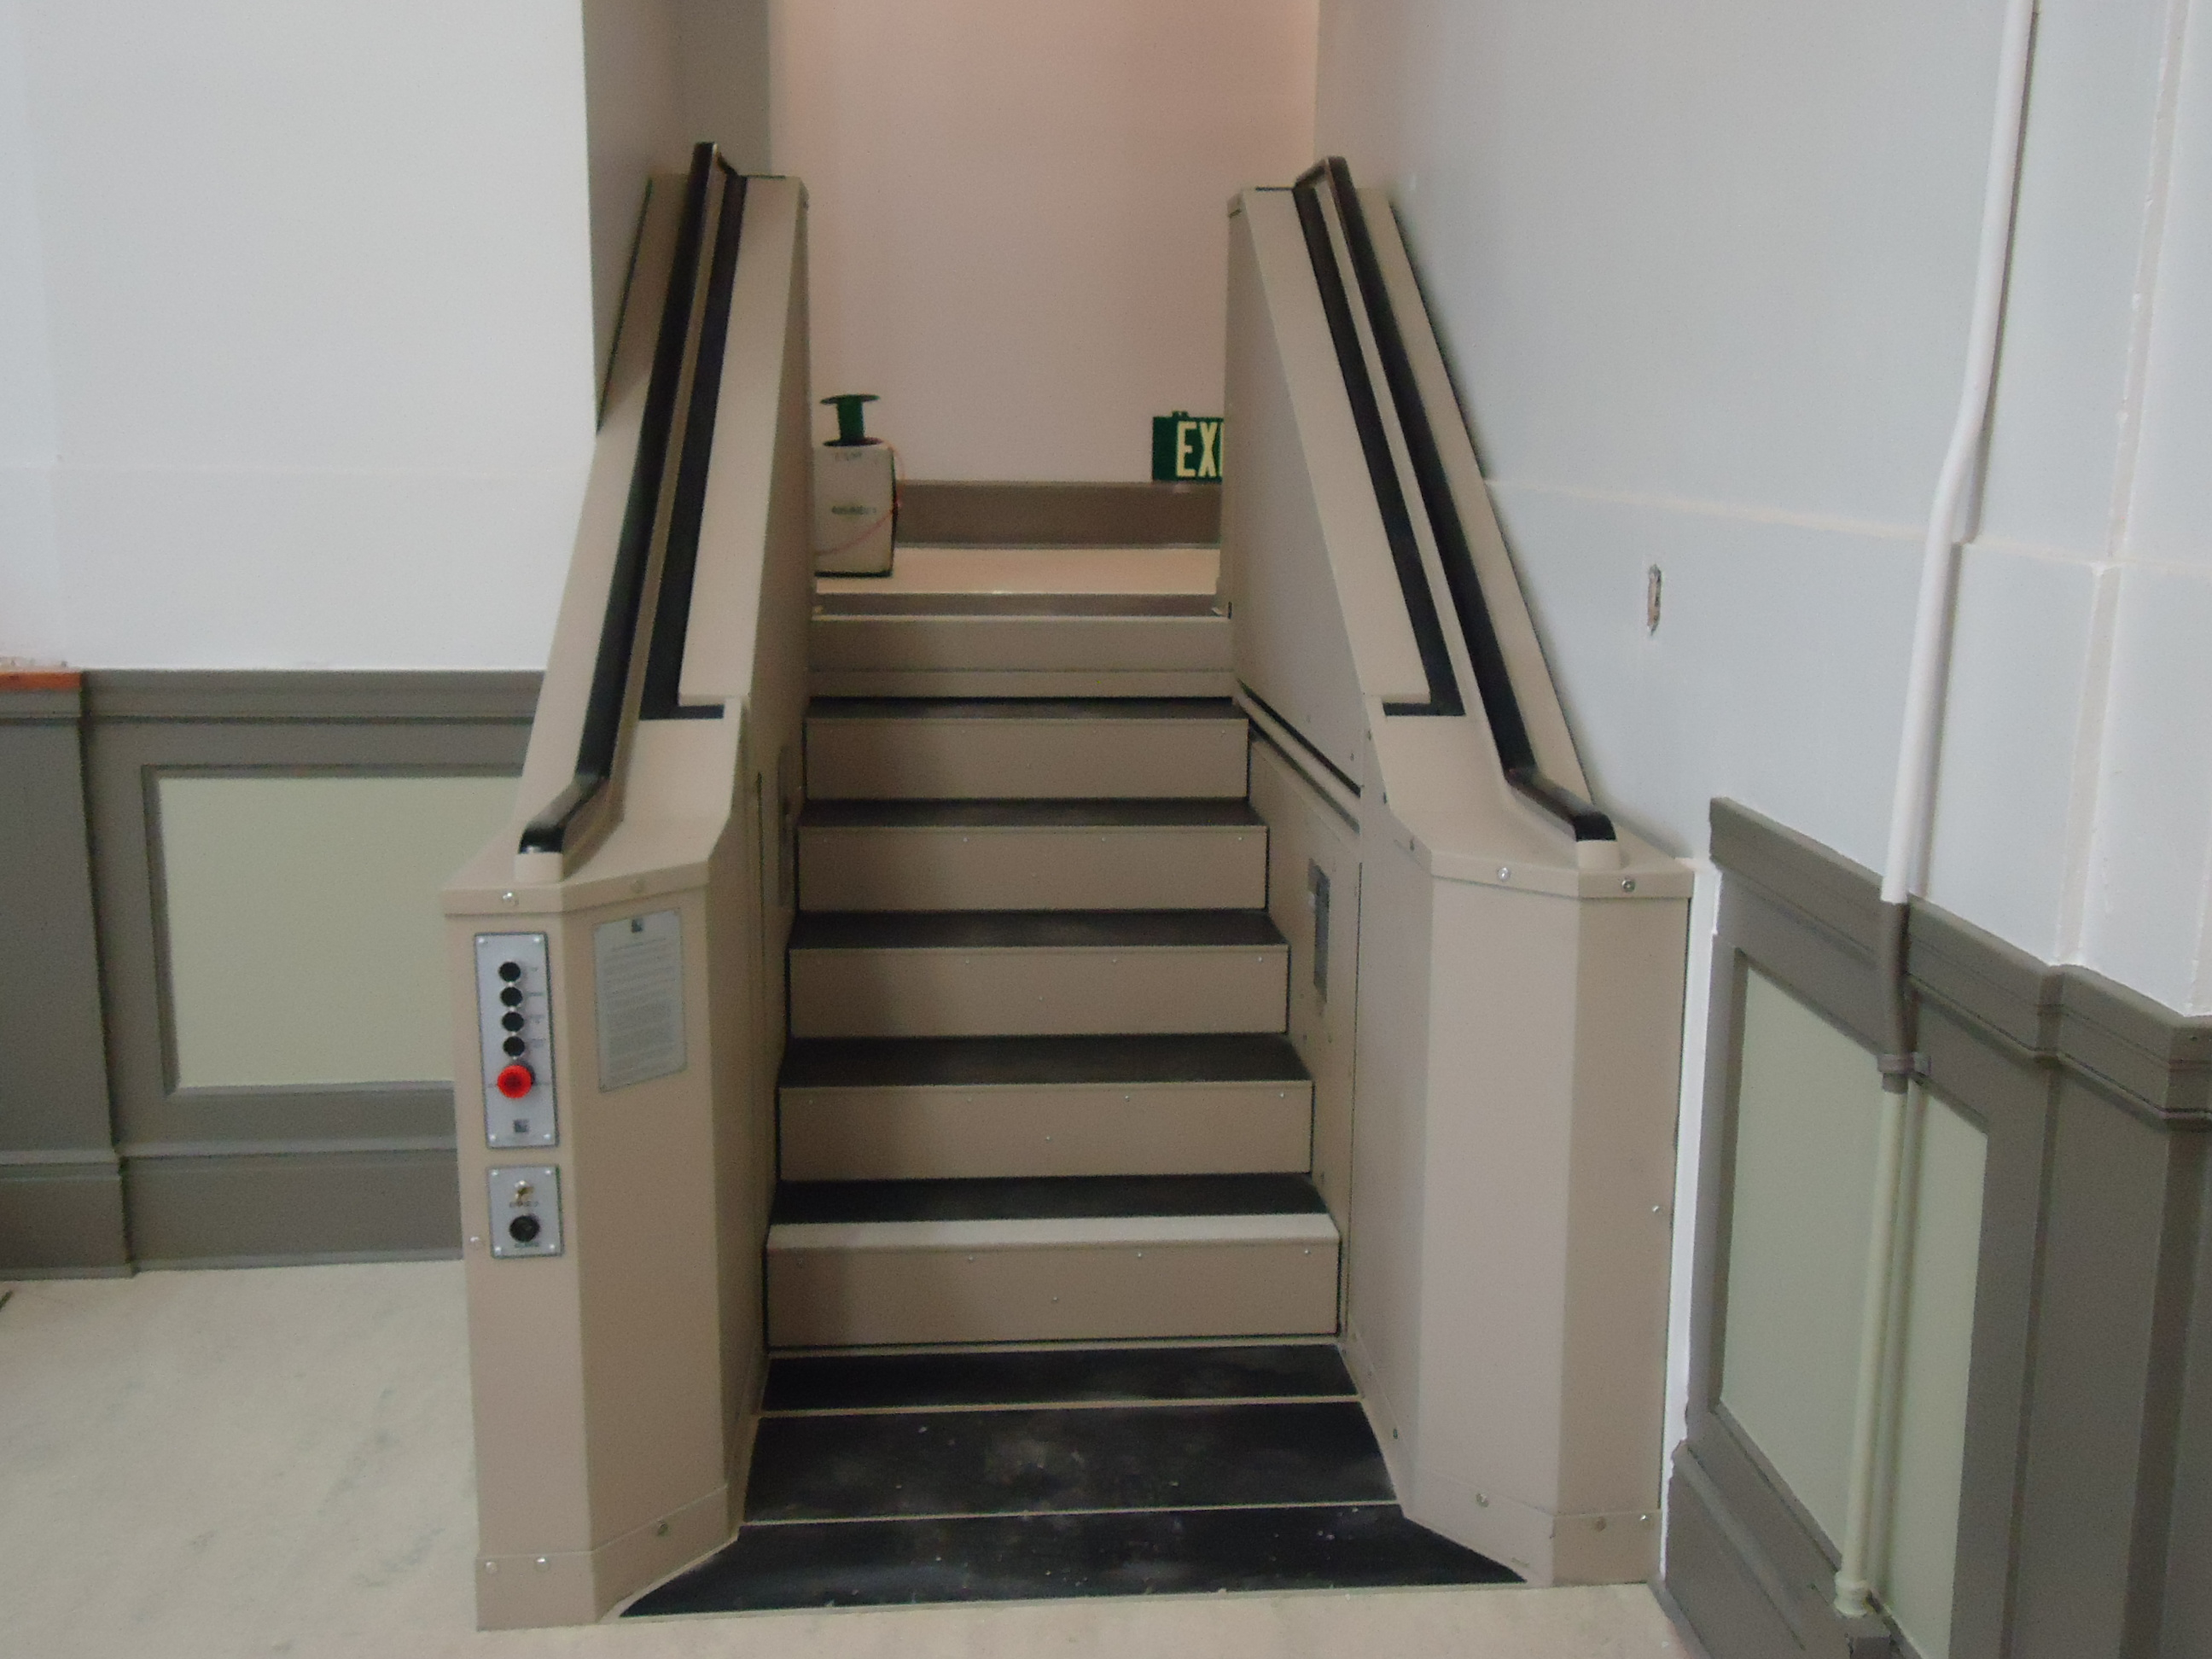 Tan in color. In step position for ambulatory access to stage in a school multipurpose room. Lift function readily available, independently operable.